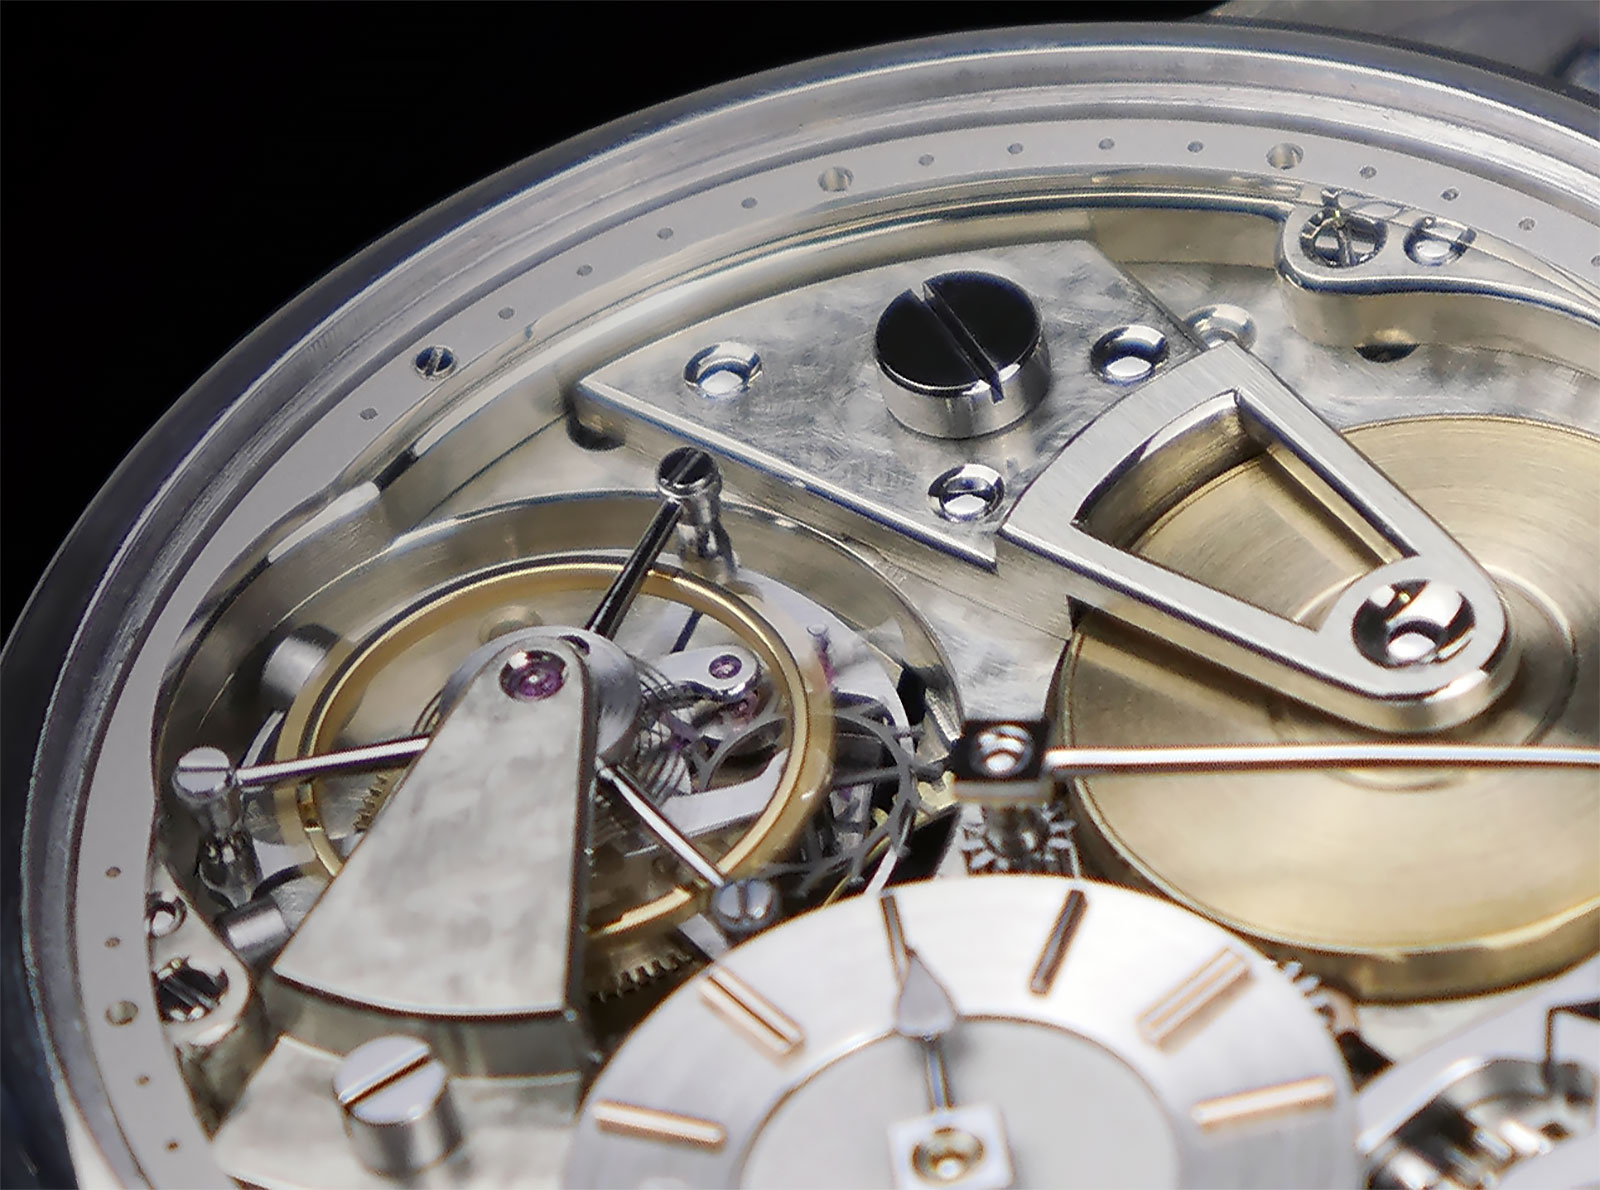 theo auffret tourbillon a paris watch 3